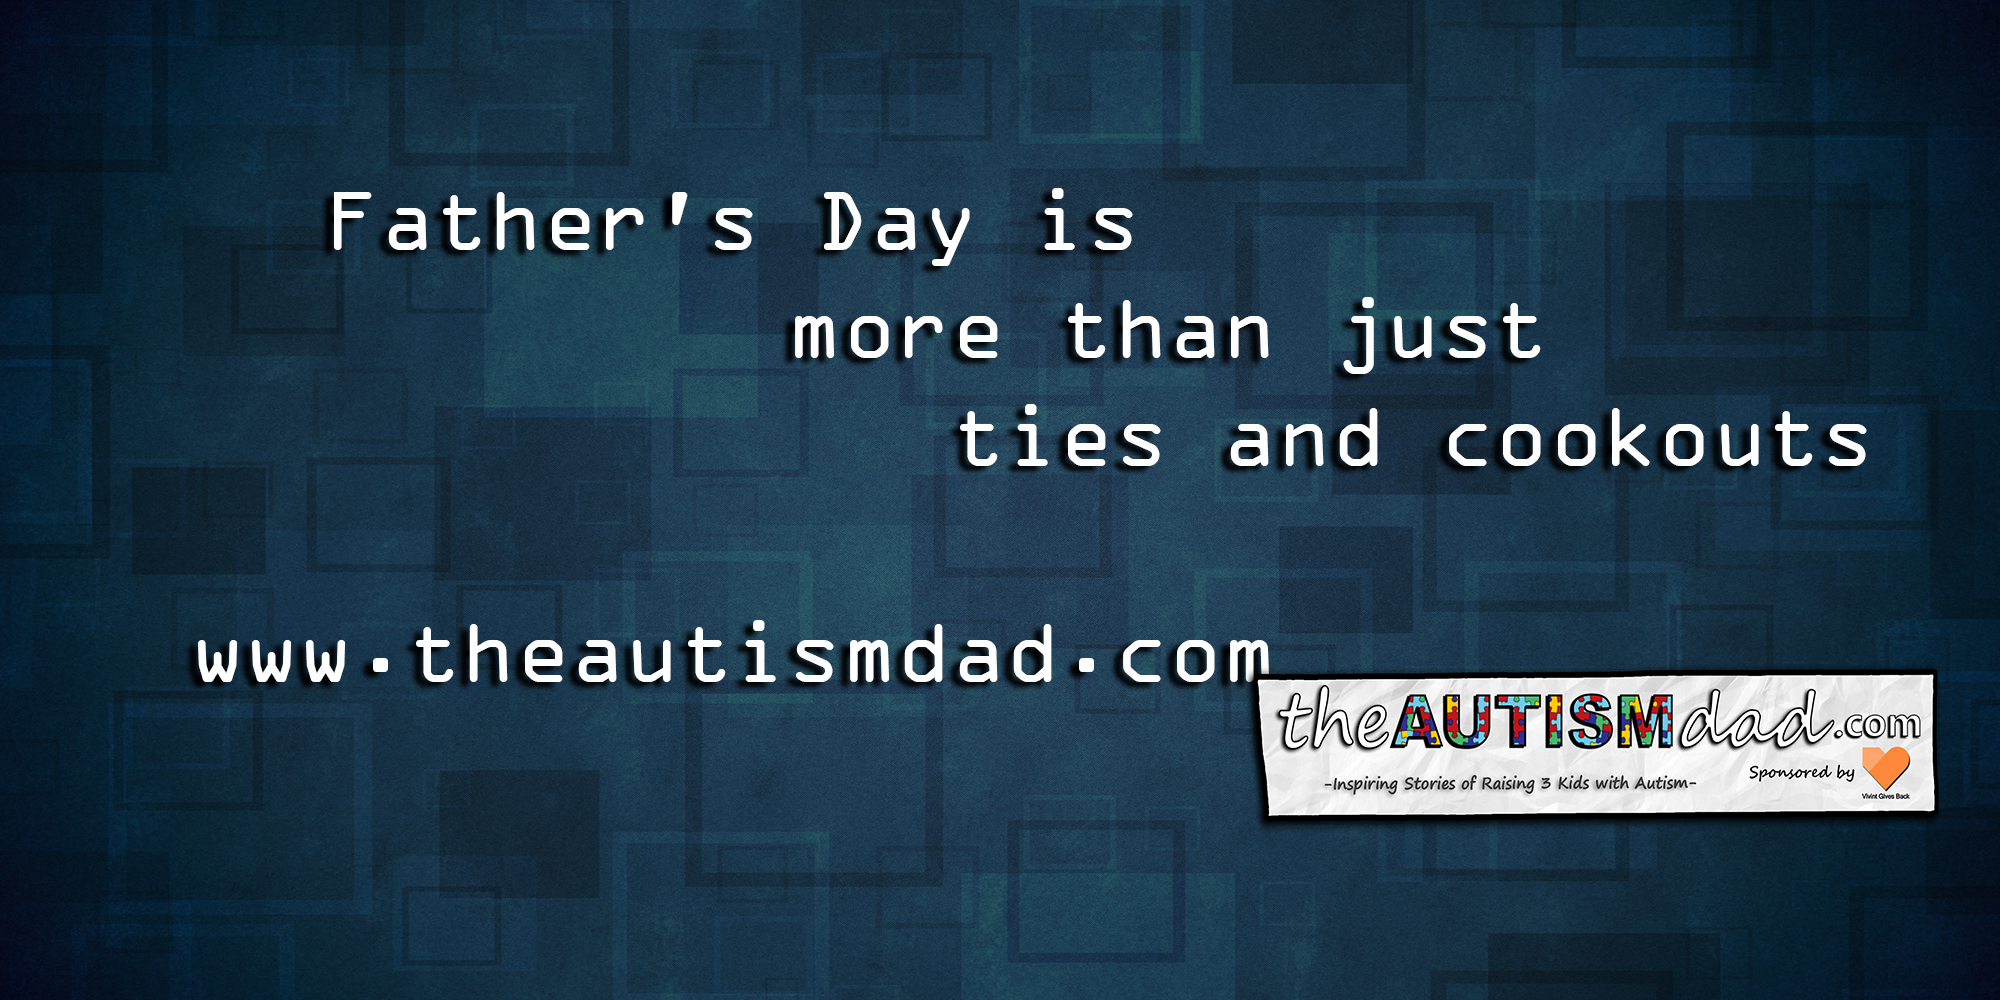 Father's Day is more than just ties and cookouts